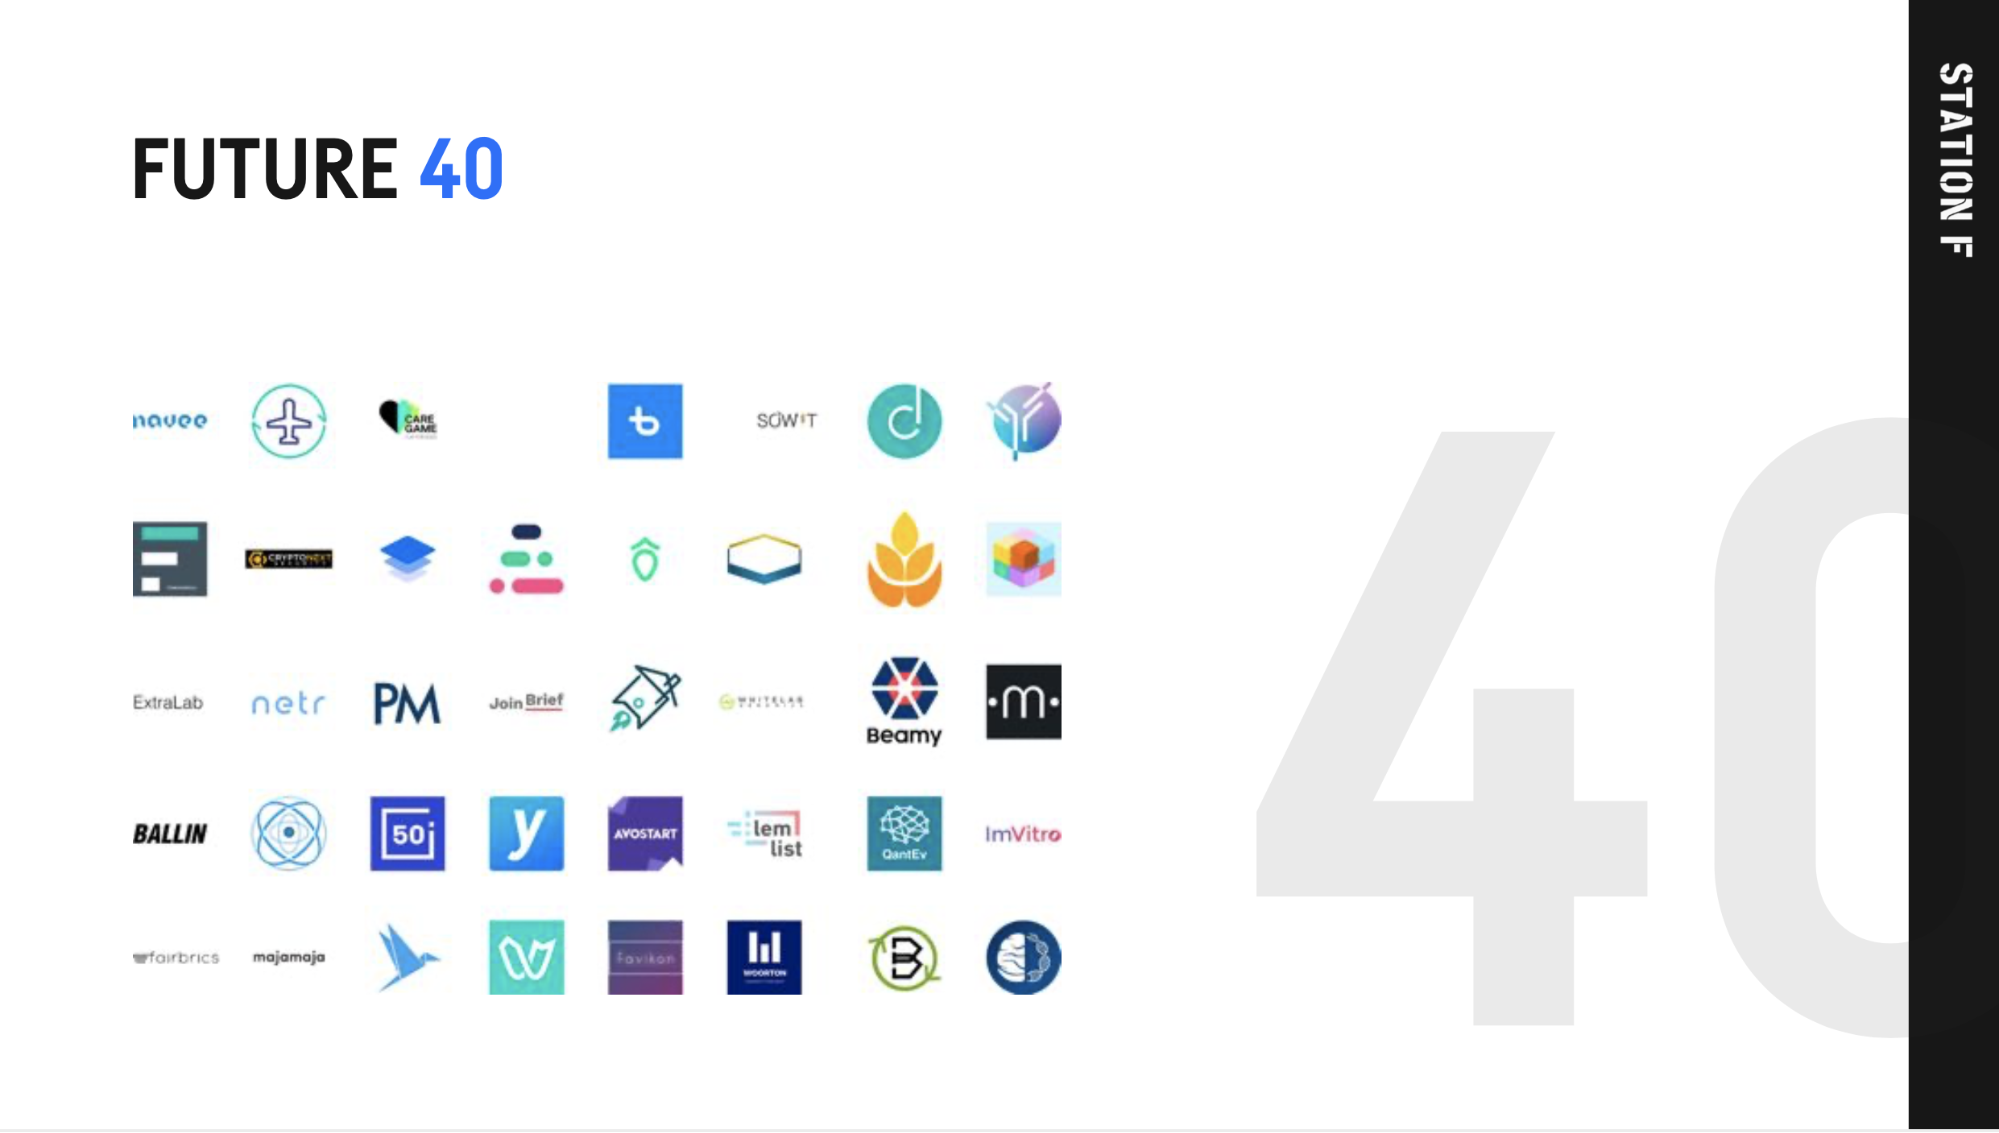 frenchtech-future40